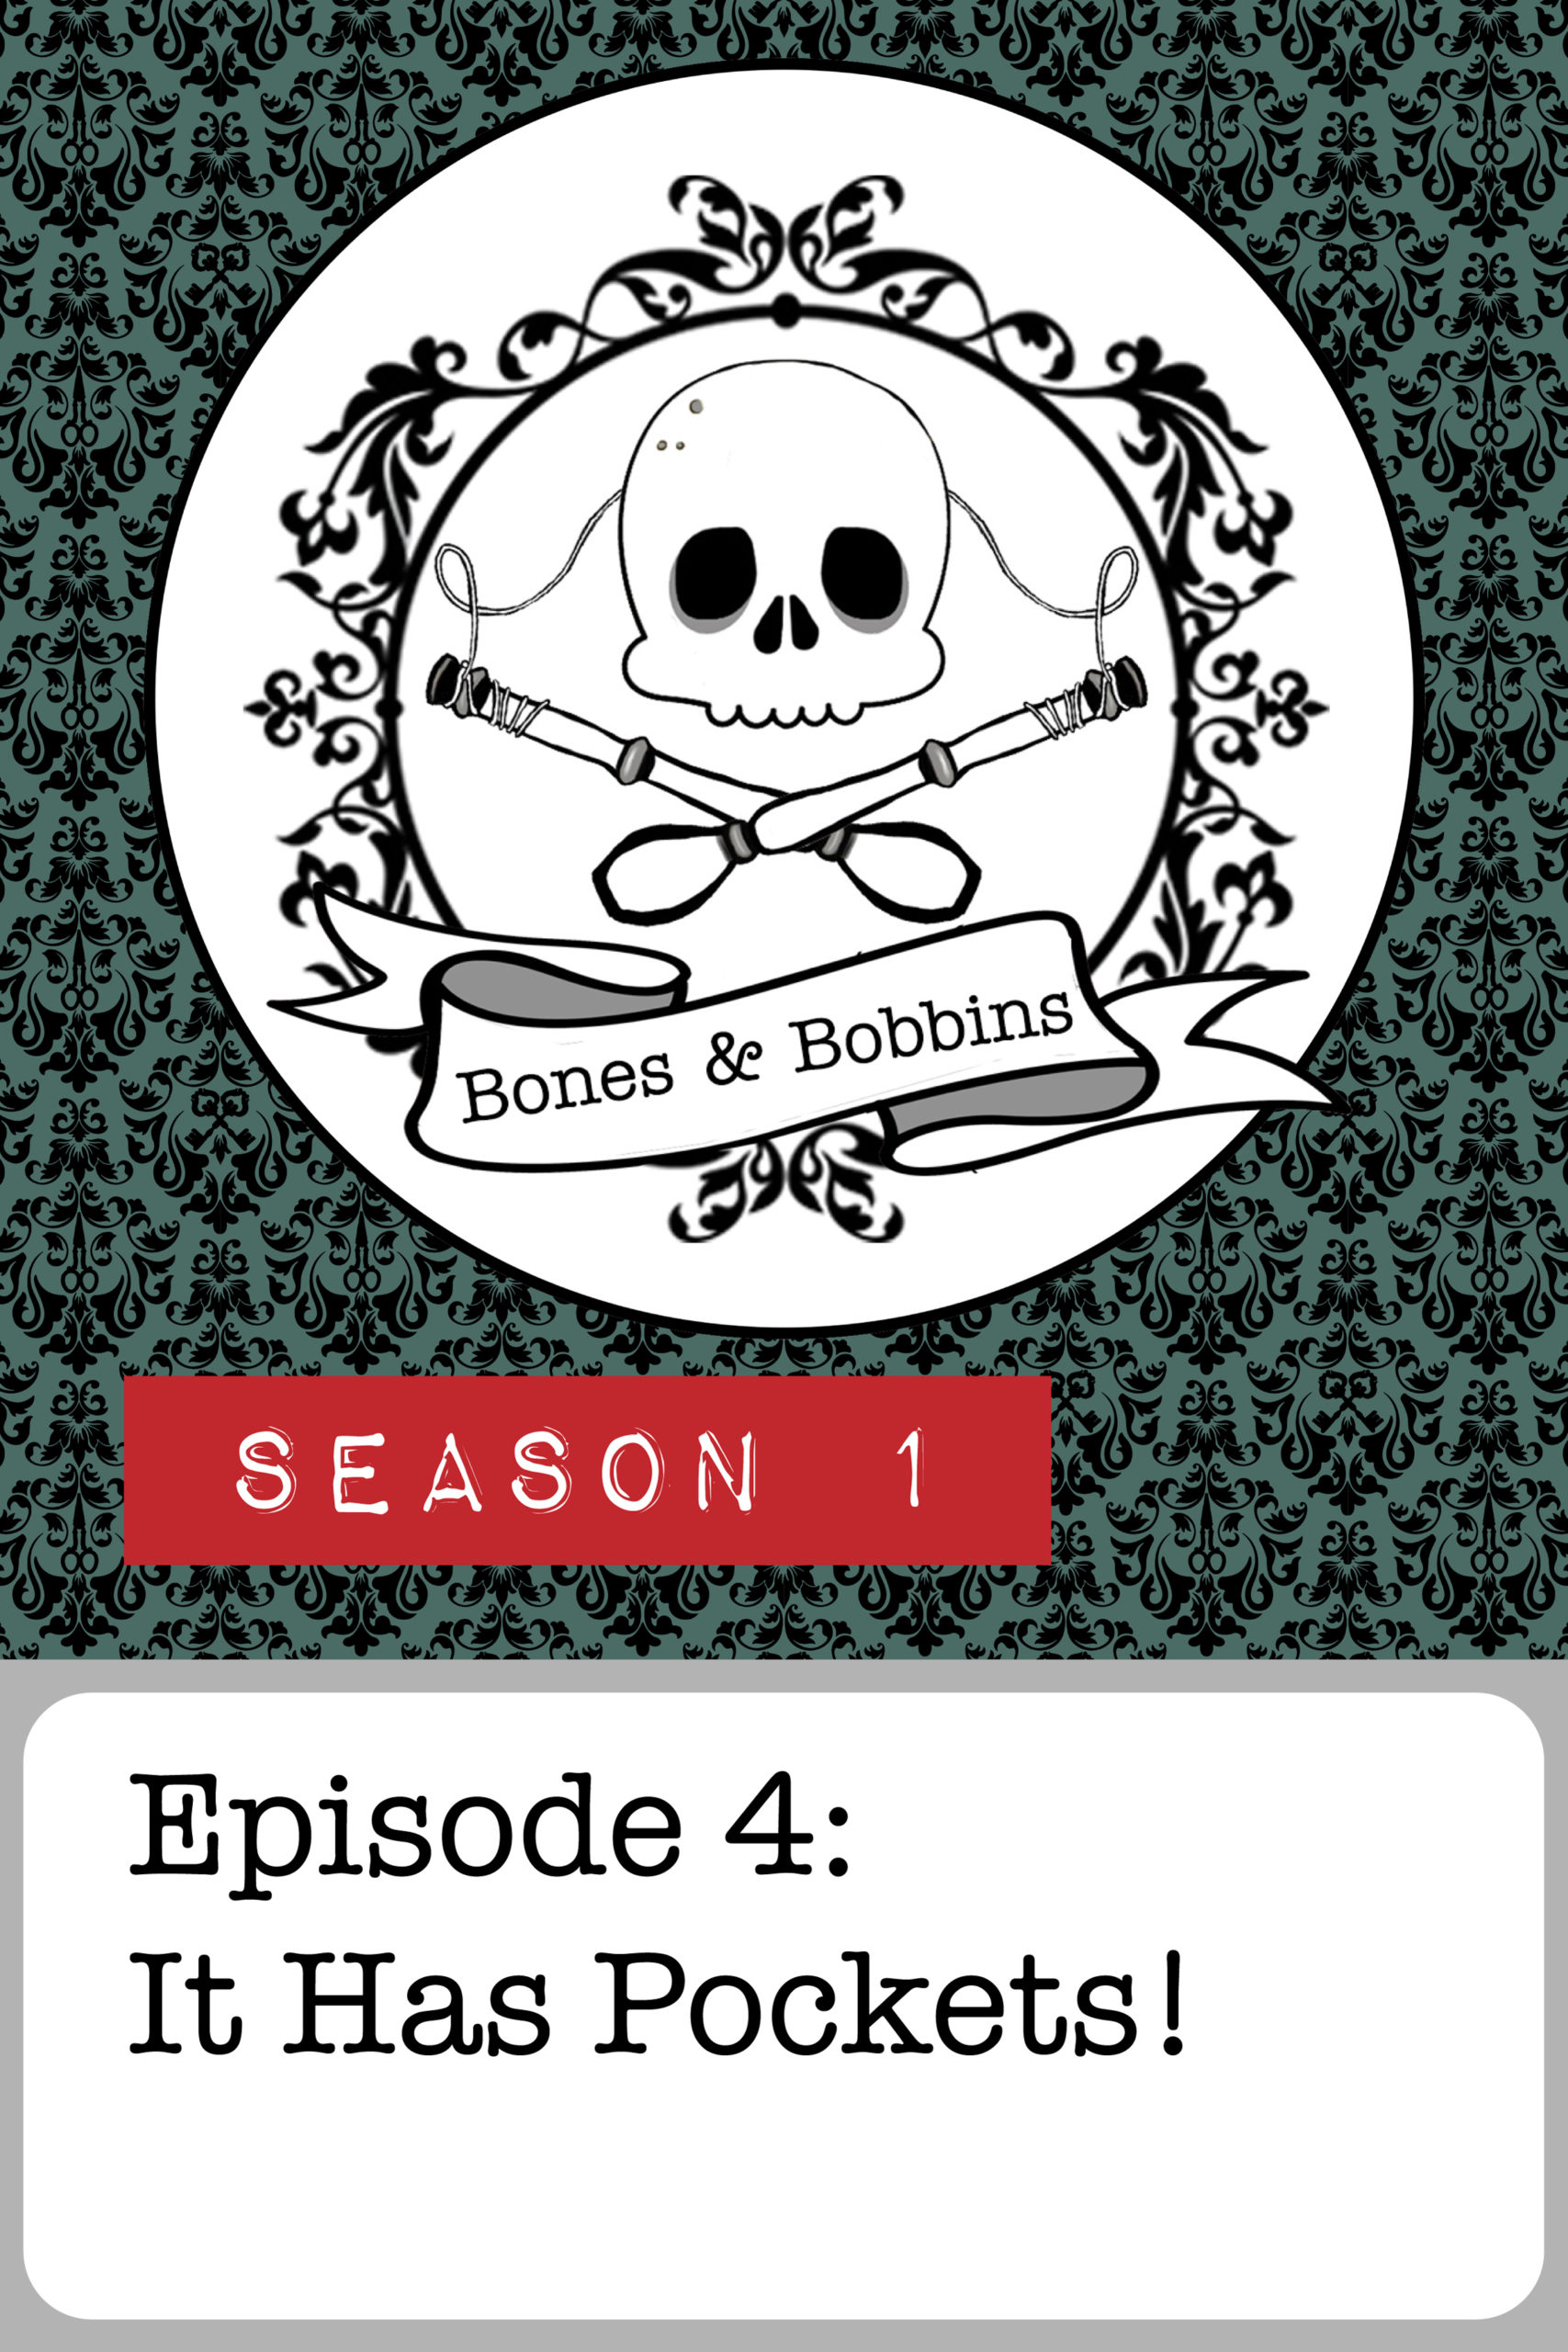 The Bones & Bobbins Podcast, Season 1, Episode 04: It Has Pockets!